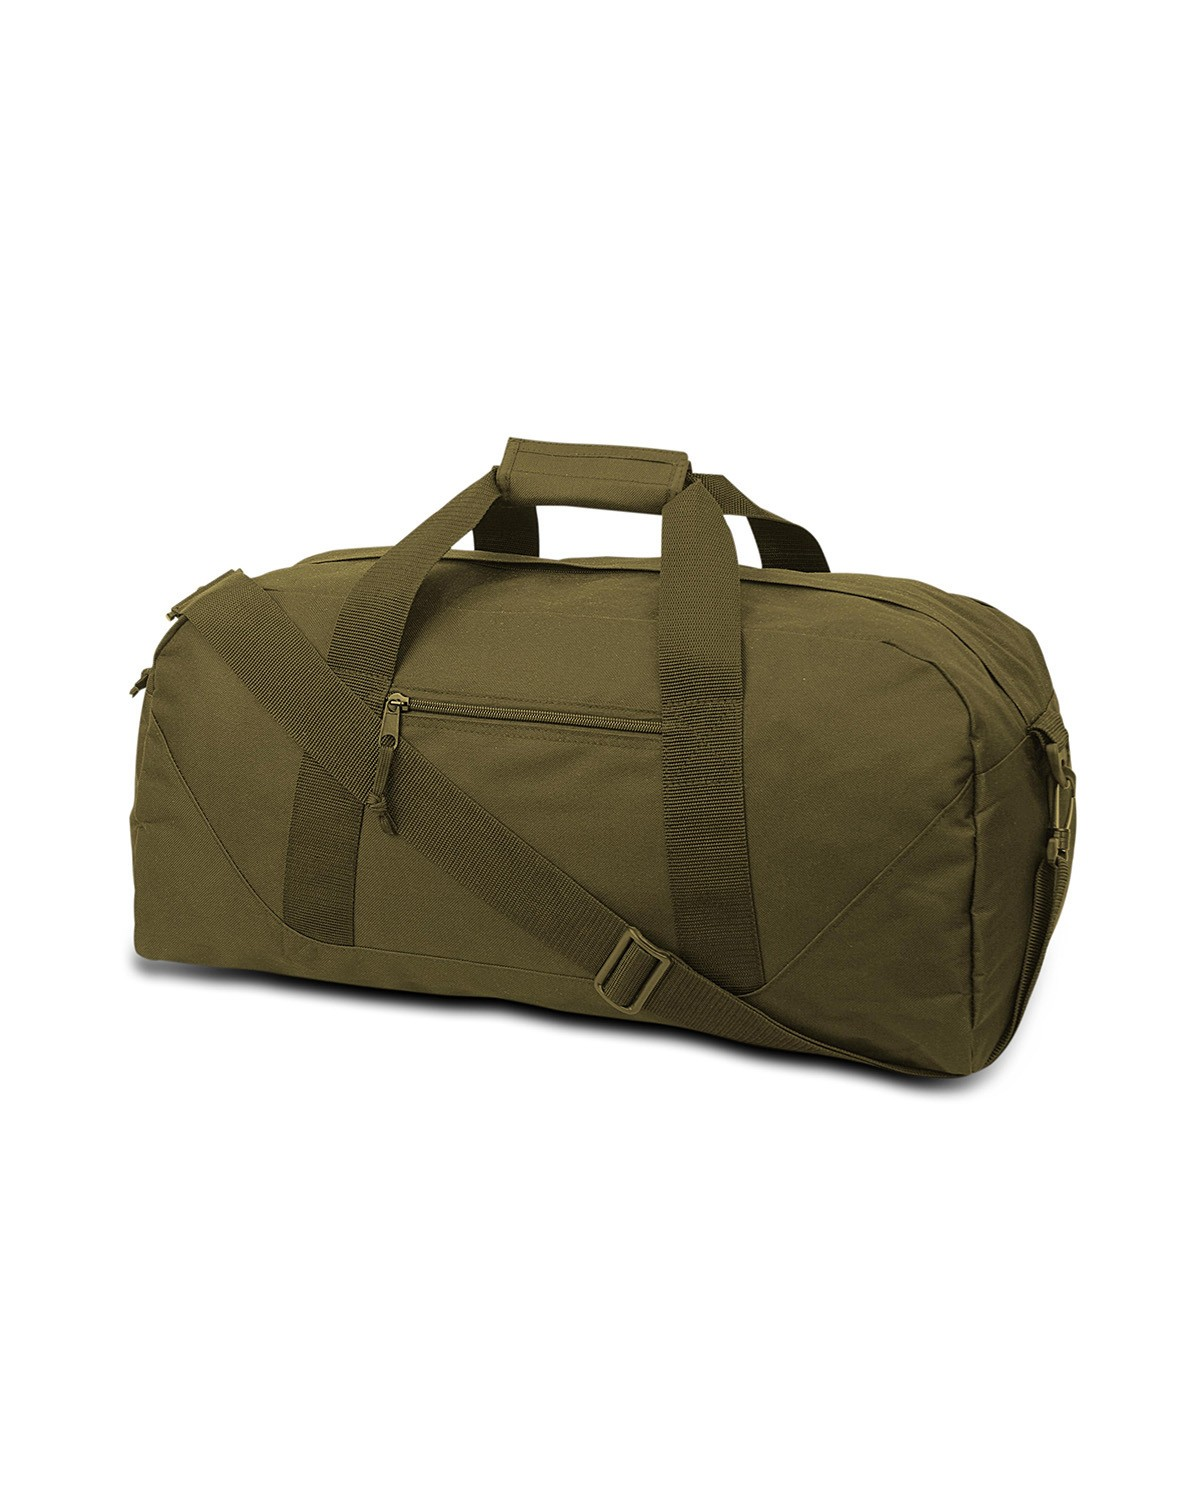 8806 Liberty Bags KHAKI GREEN